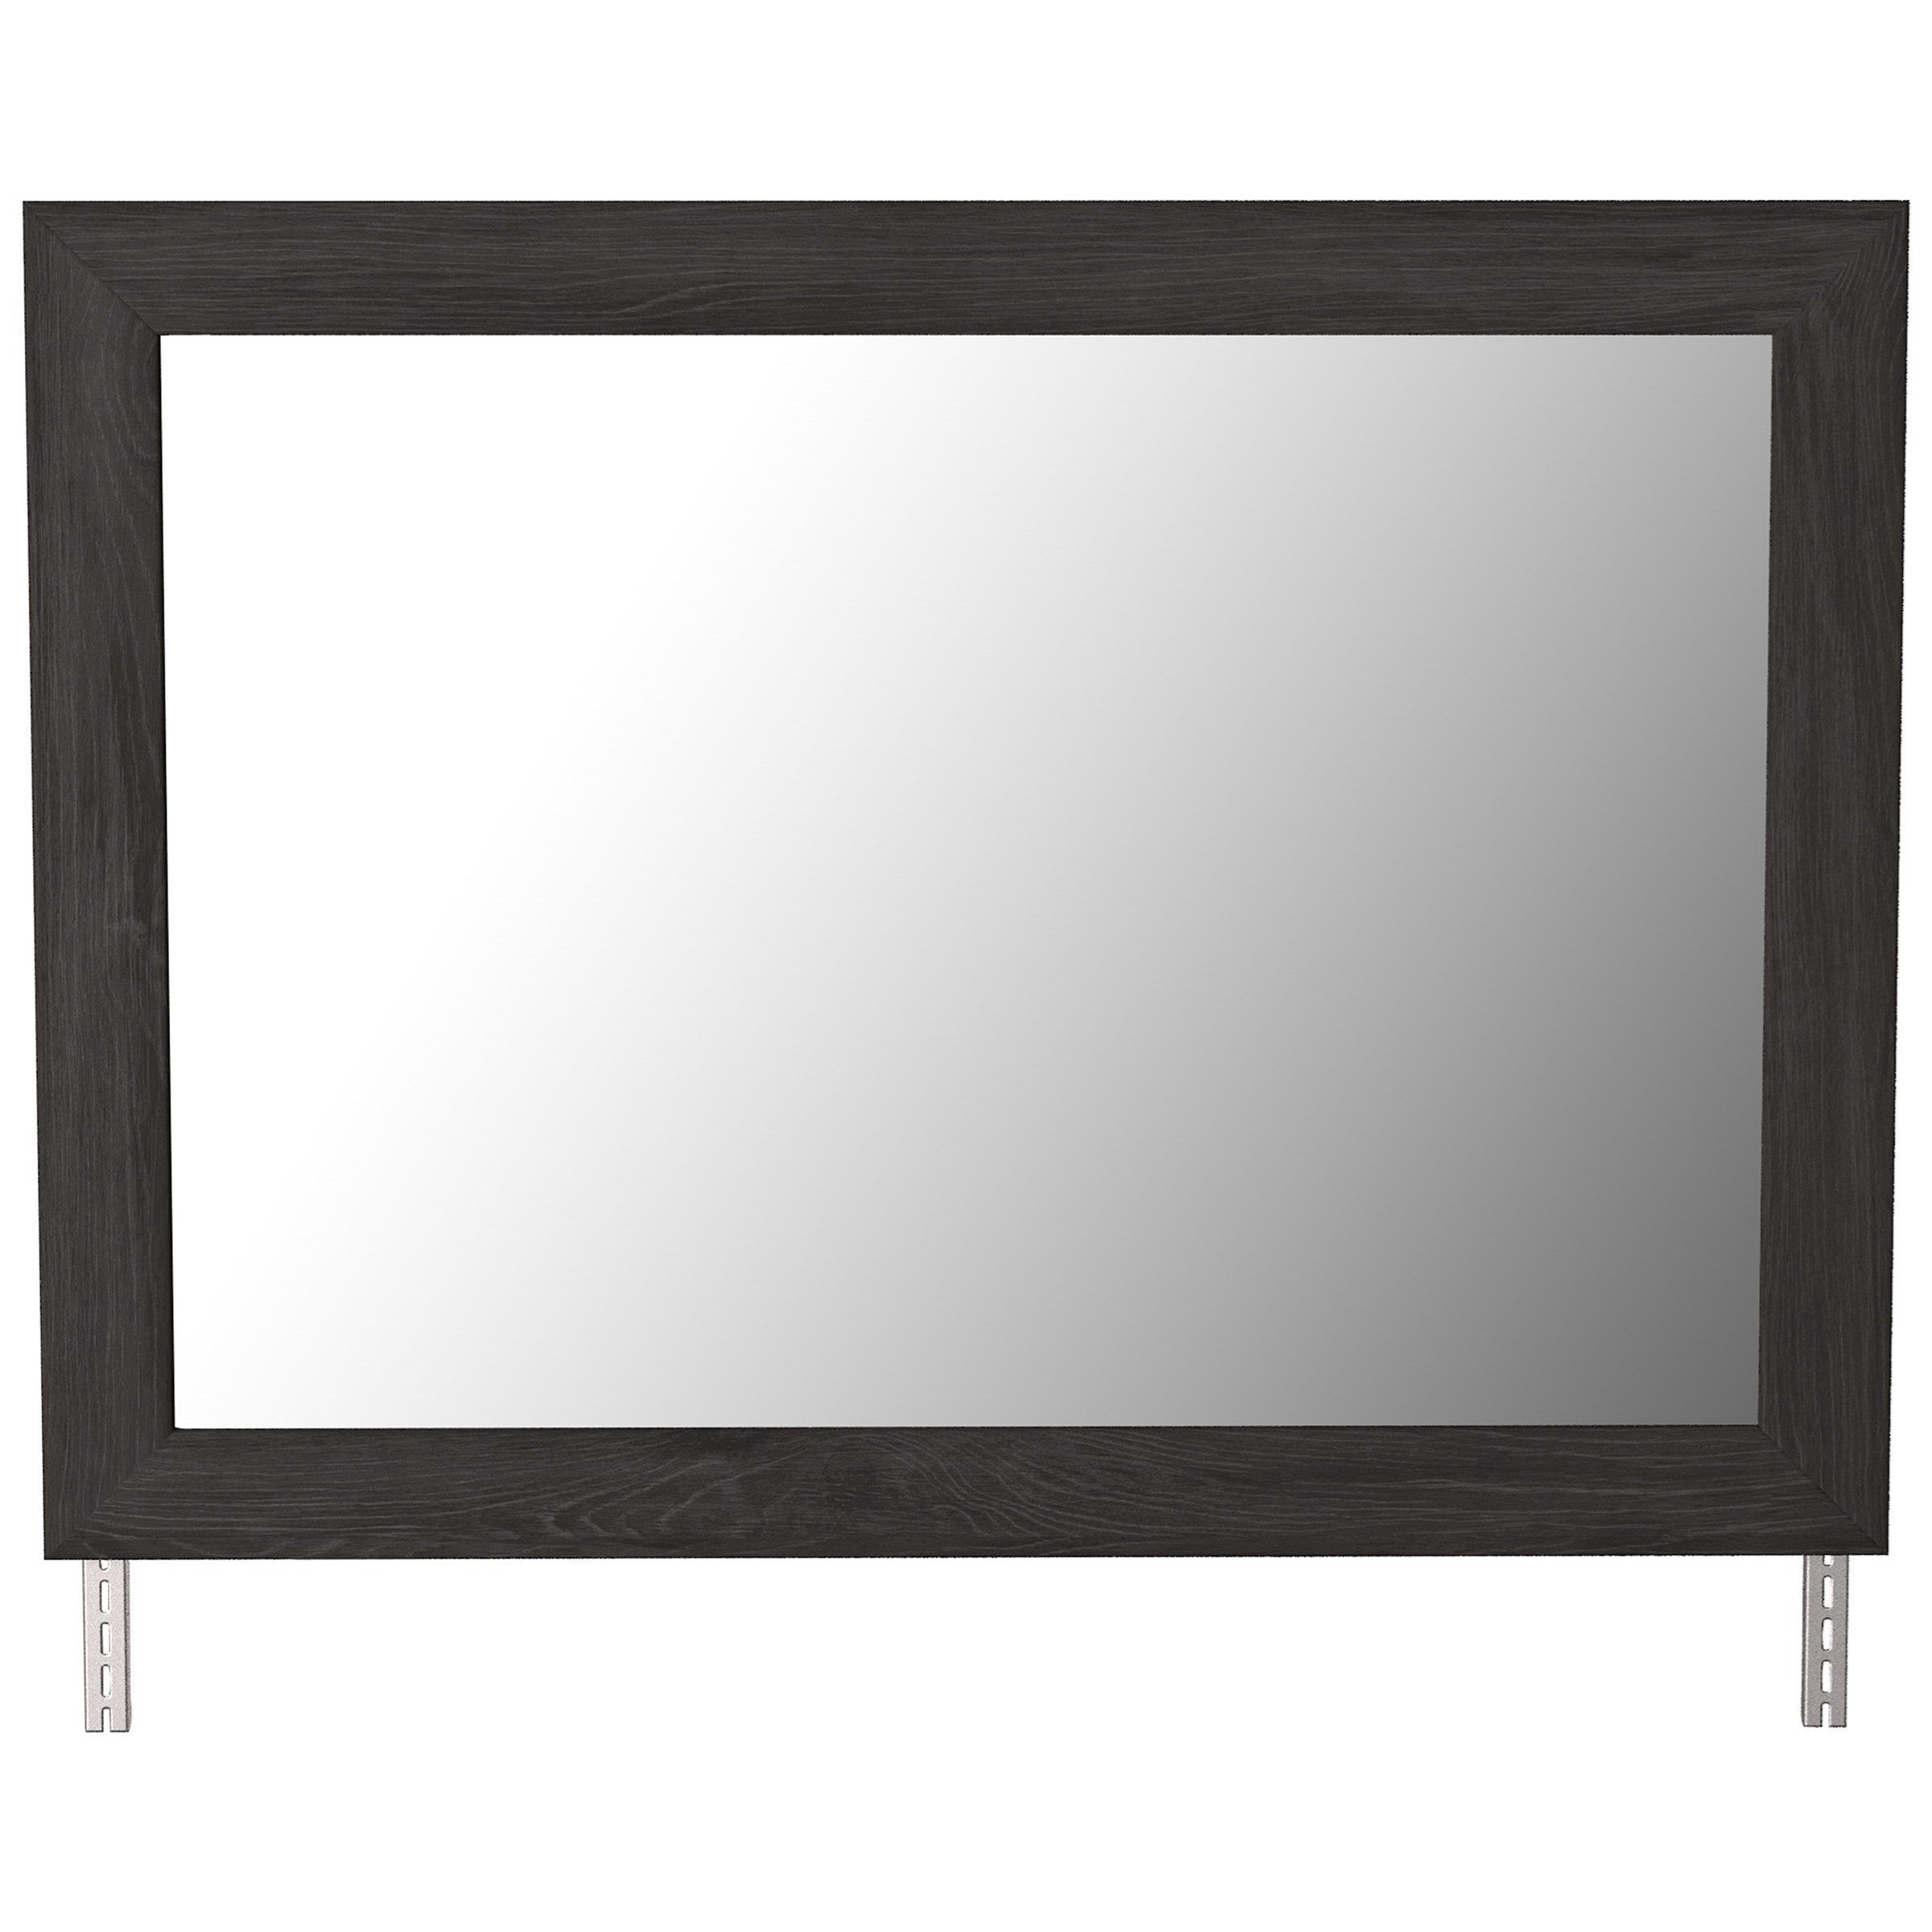 Belachime Bedroom Mirror by StyleLine at EFO Furniture Outlet